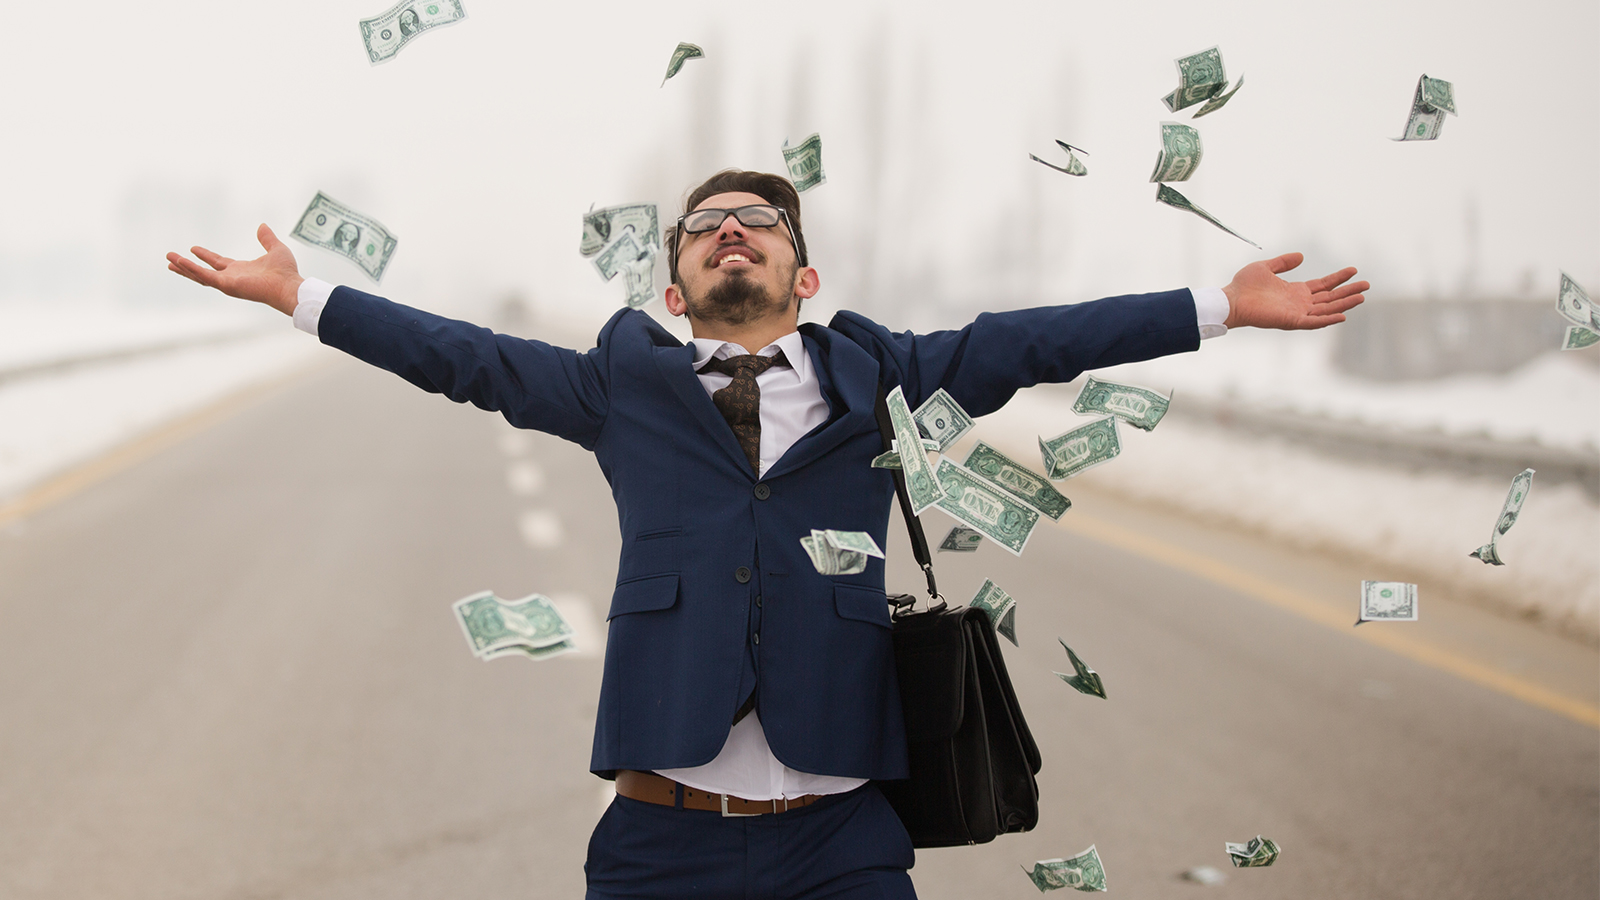 10 steps to become a millionaire in 5 years (or less)